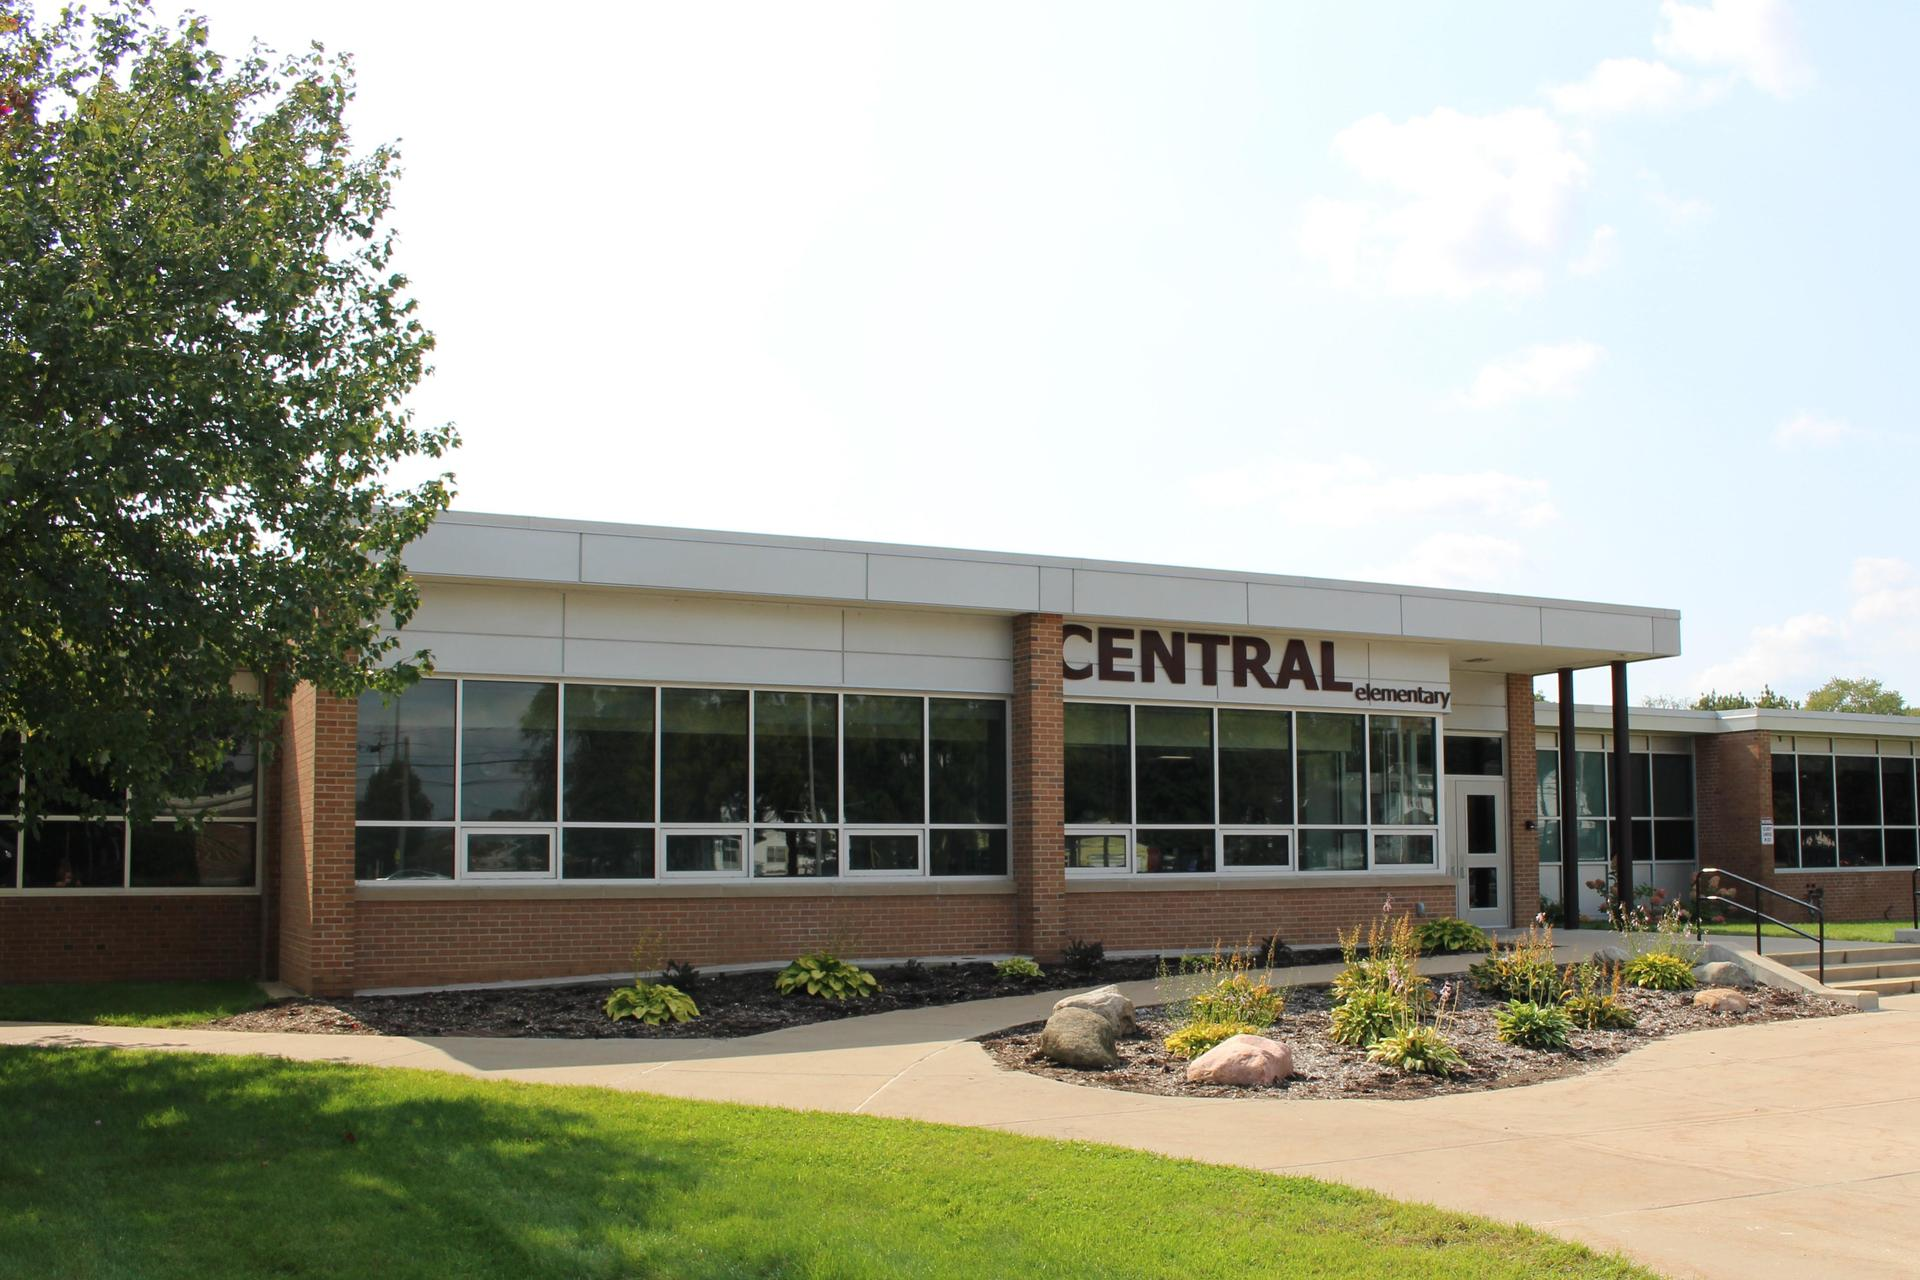 Central Elementary exterior